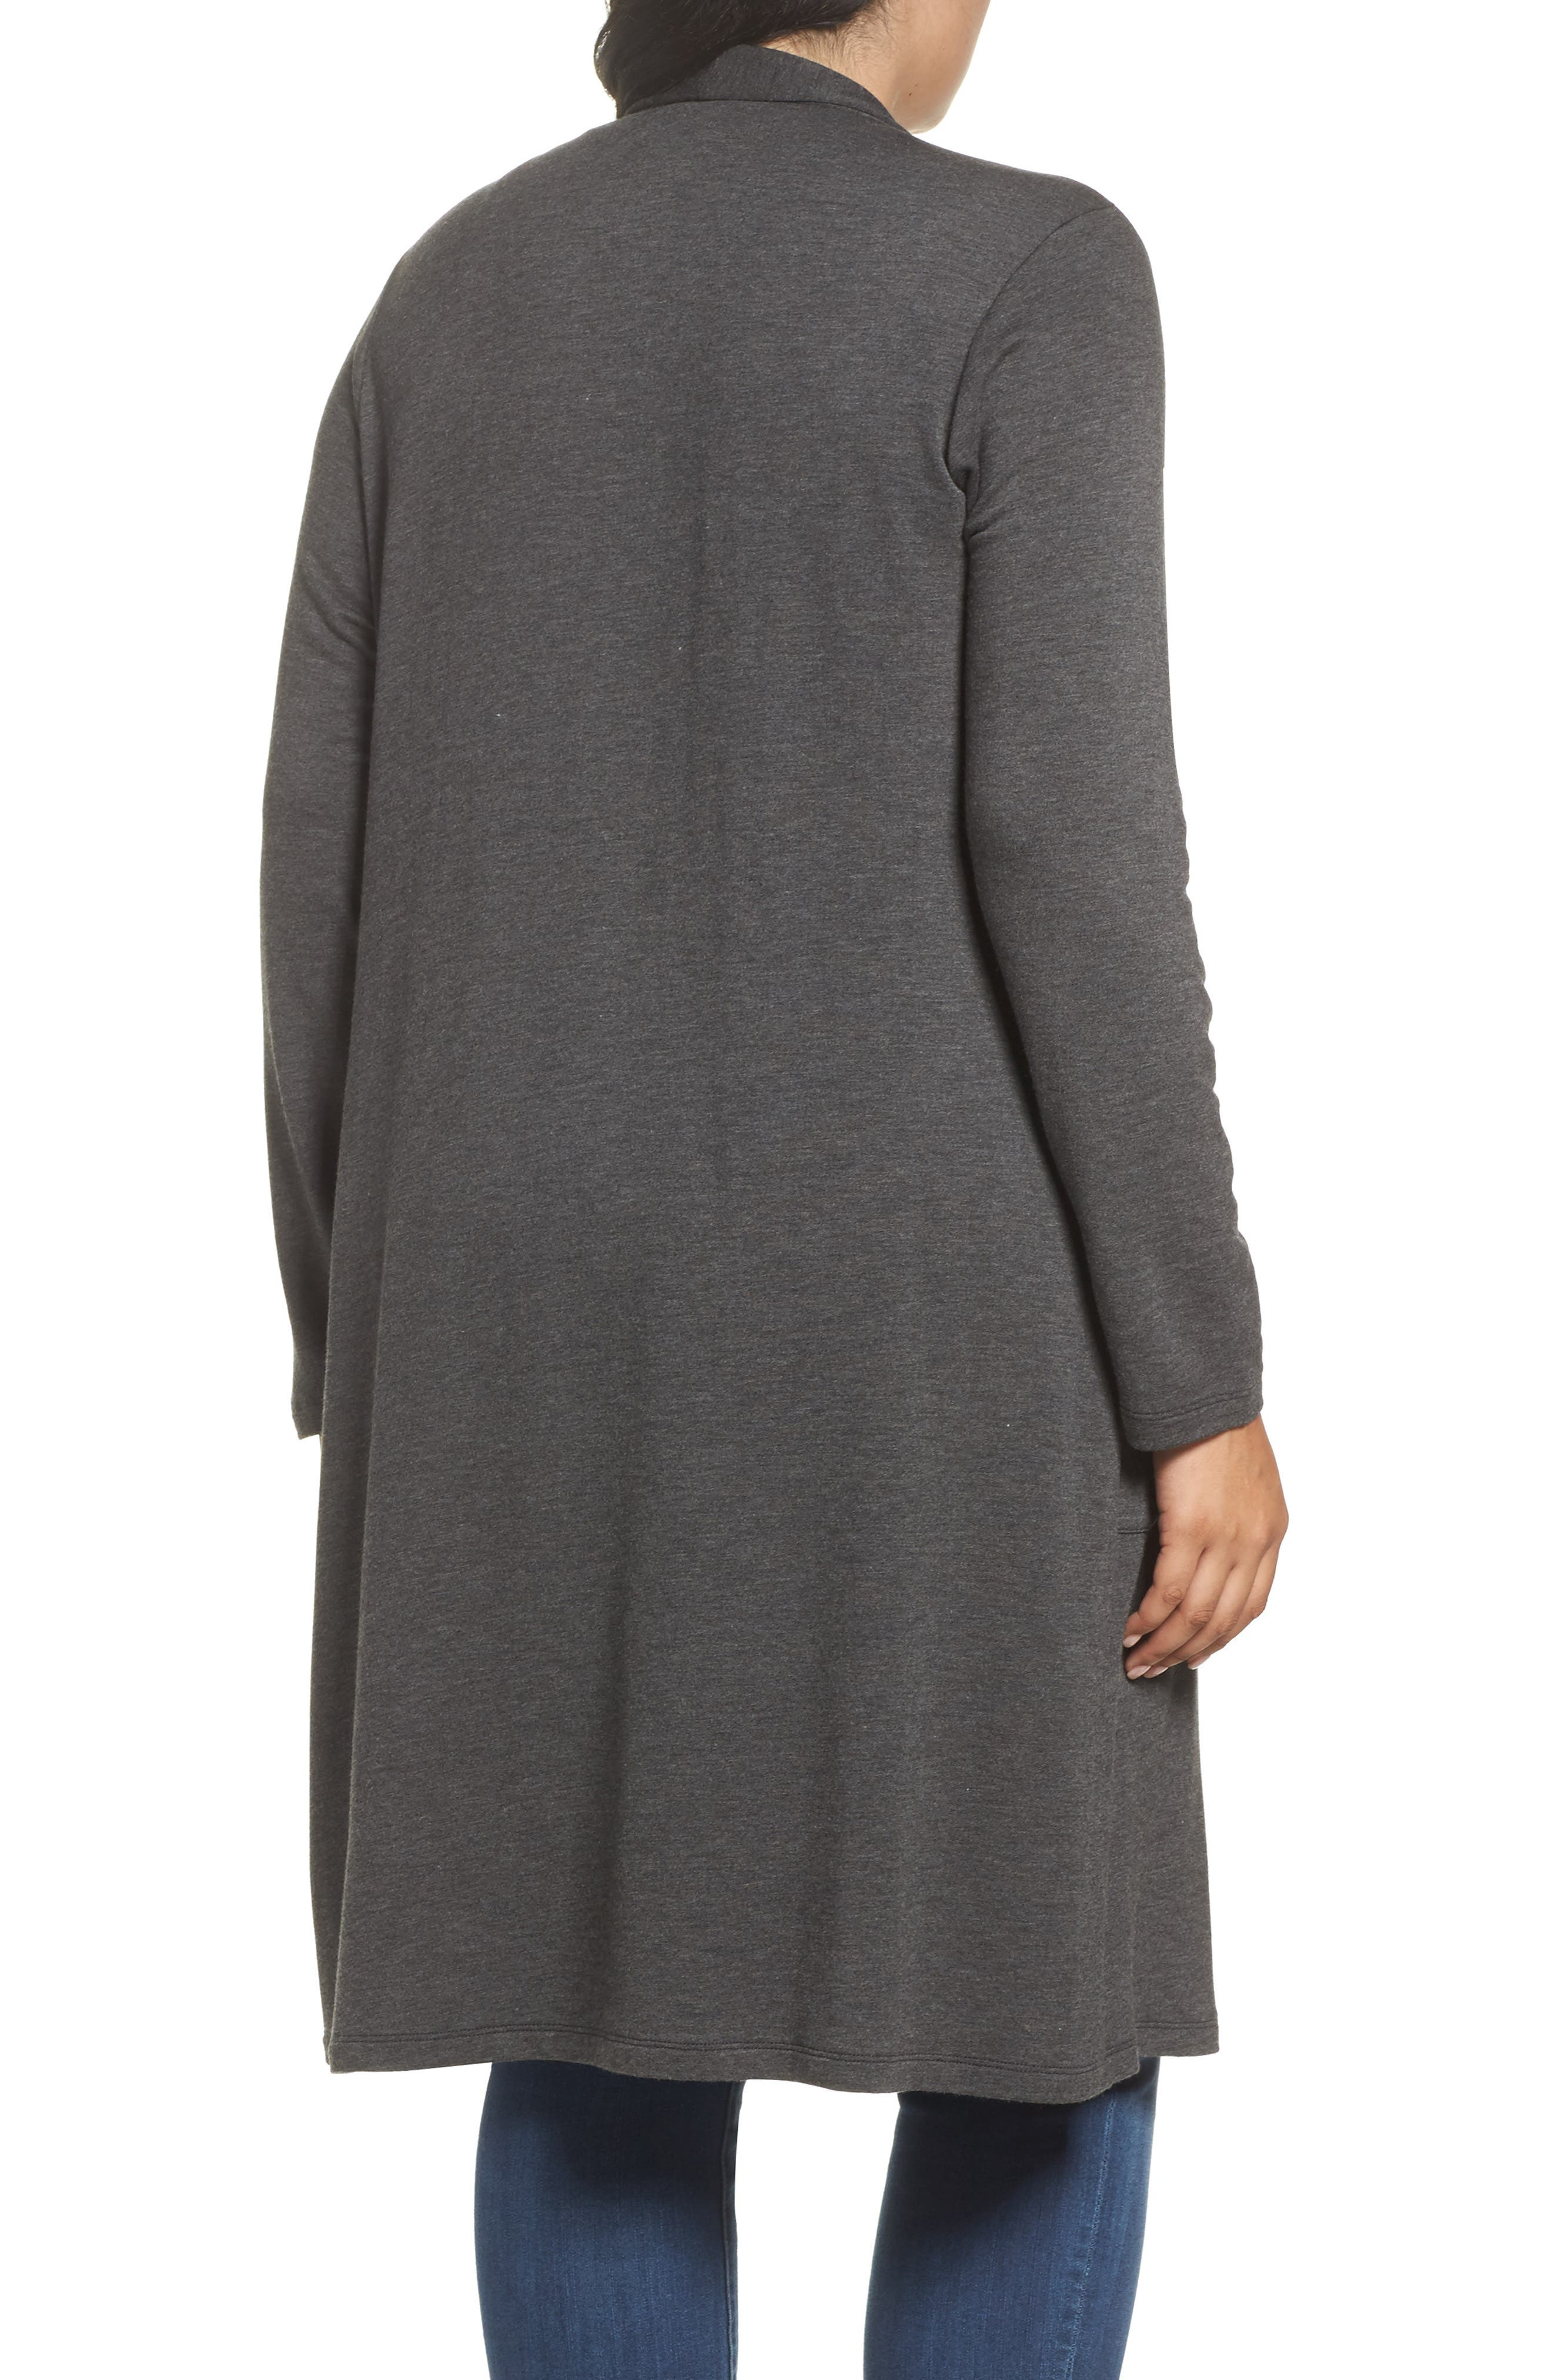 Two-Pocket Stretch Cardigan,                             Alternate thumbnail 5, color,